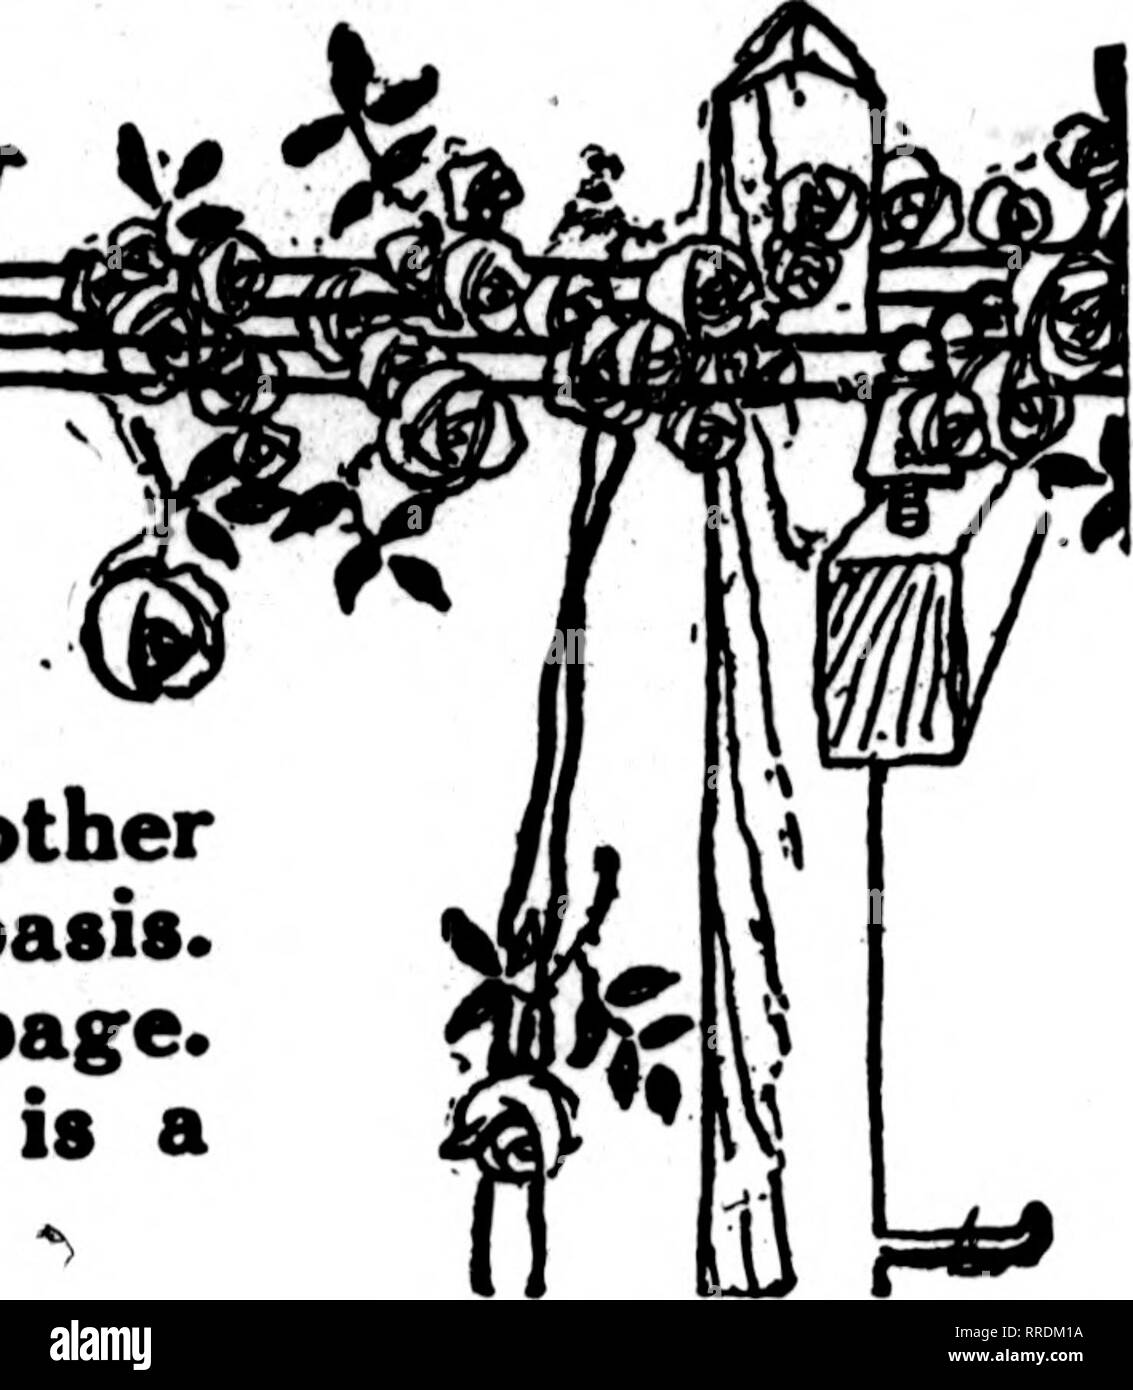 . Florists' review [microform]. Floriculture. Telegraph Deliveryjgfe^ ——?—Department THE florists whose cards appear in the Pink Part of The Florists' Review are prepared to fill orders from other florists, for local delivery, on the usual basis. See index by towns on the following page. If your city is not represented, there is a specially good opportunity for you.. We are all blind until we see That, in the human plan, Nothing is worth the making If it does not make the man. Why build these cities glorious If man unbuilded goes? In vain we build the world unless The builder also grows. —EDWI - Stock Image